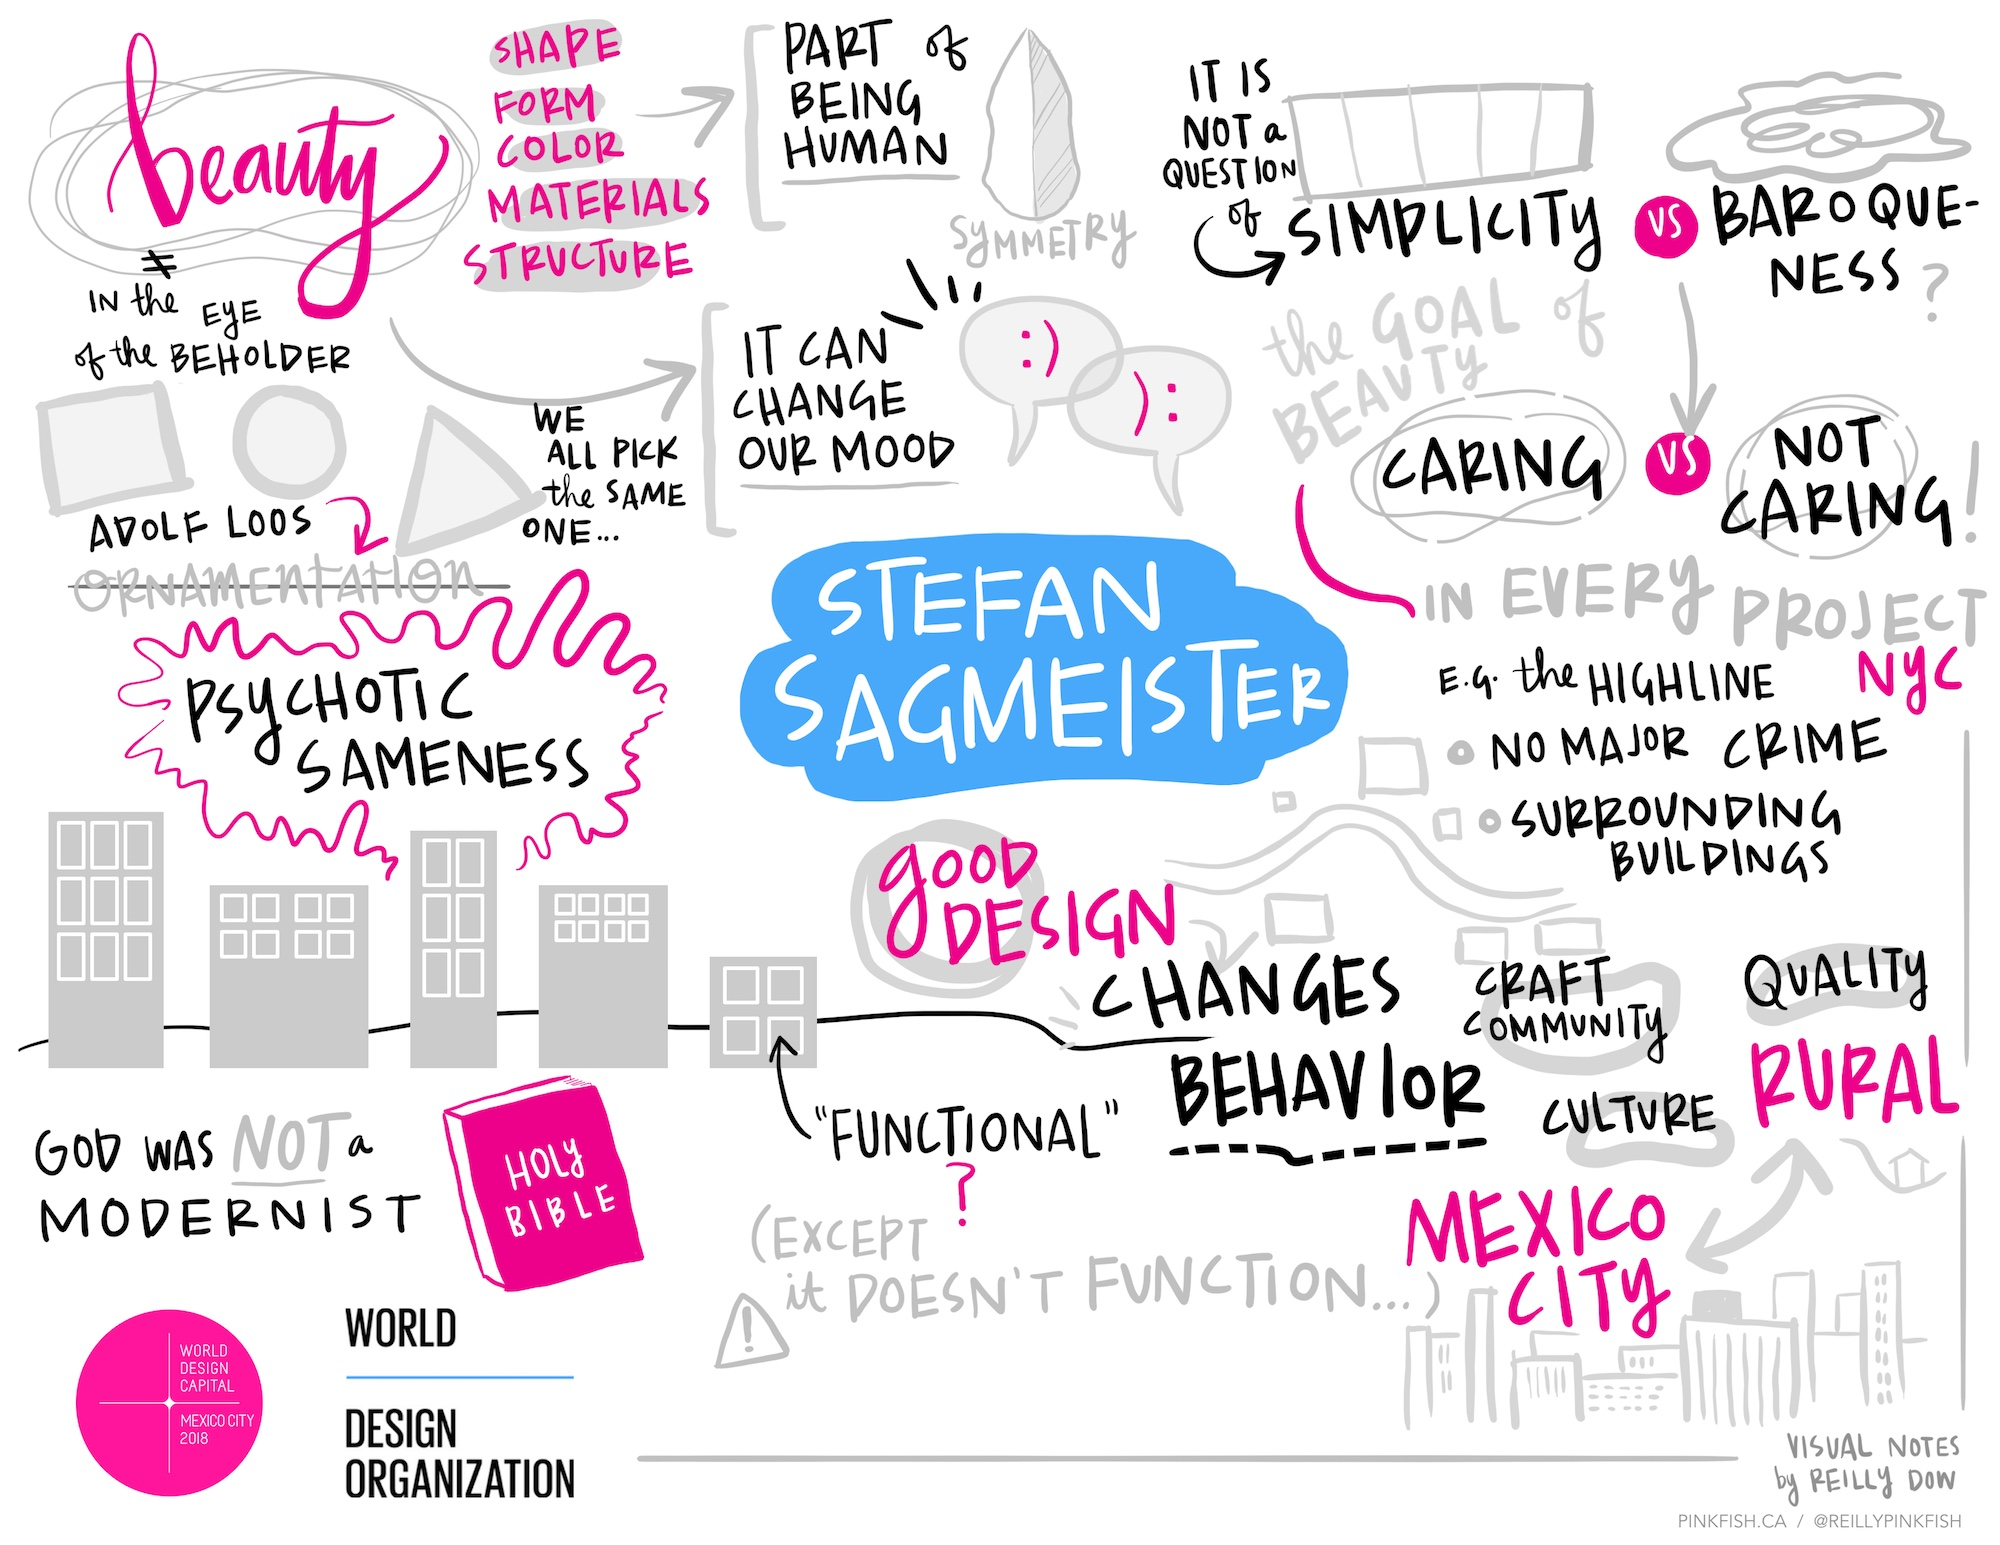 Digital Scribing. Presentation by Stefan Sagmeister at World Design Capital Conference in Mexico City, 2018.